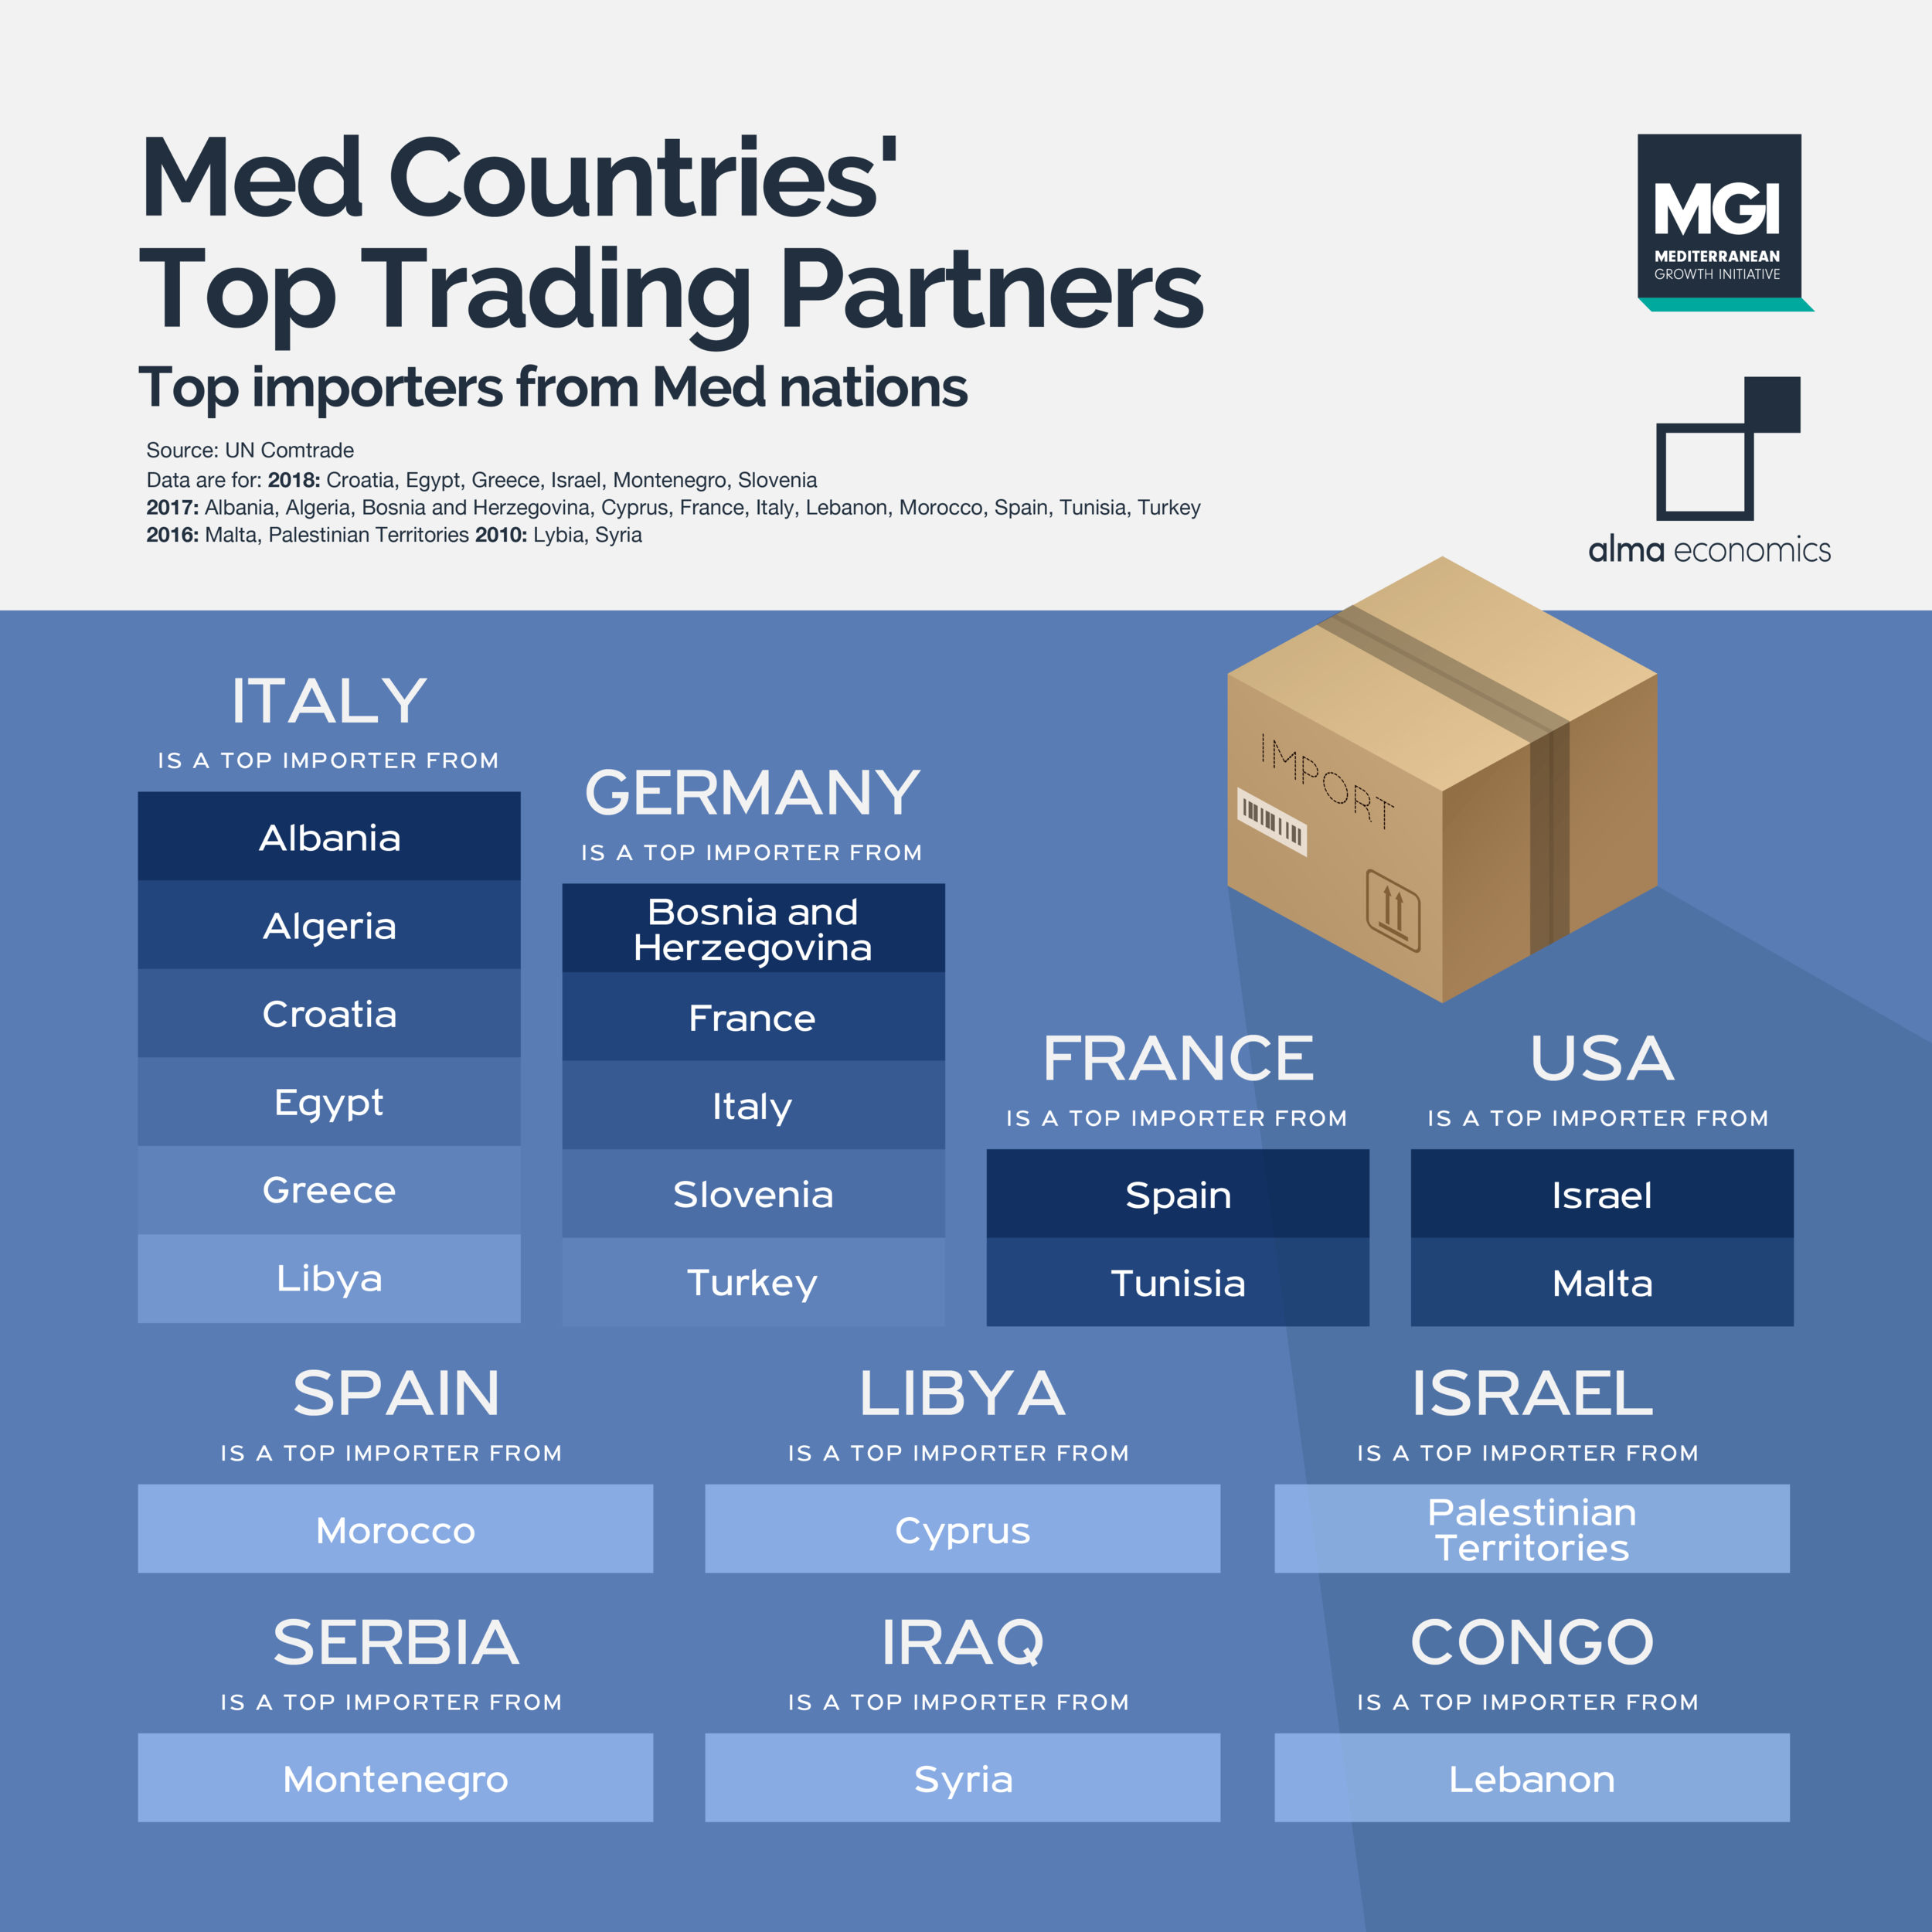 Med Countries' top trading partners - Italy and Germany are the main destinations for goods produced in the Med region